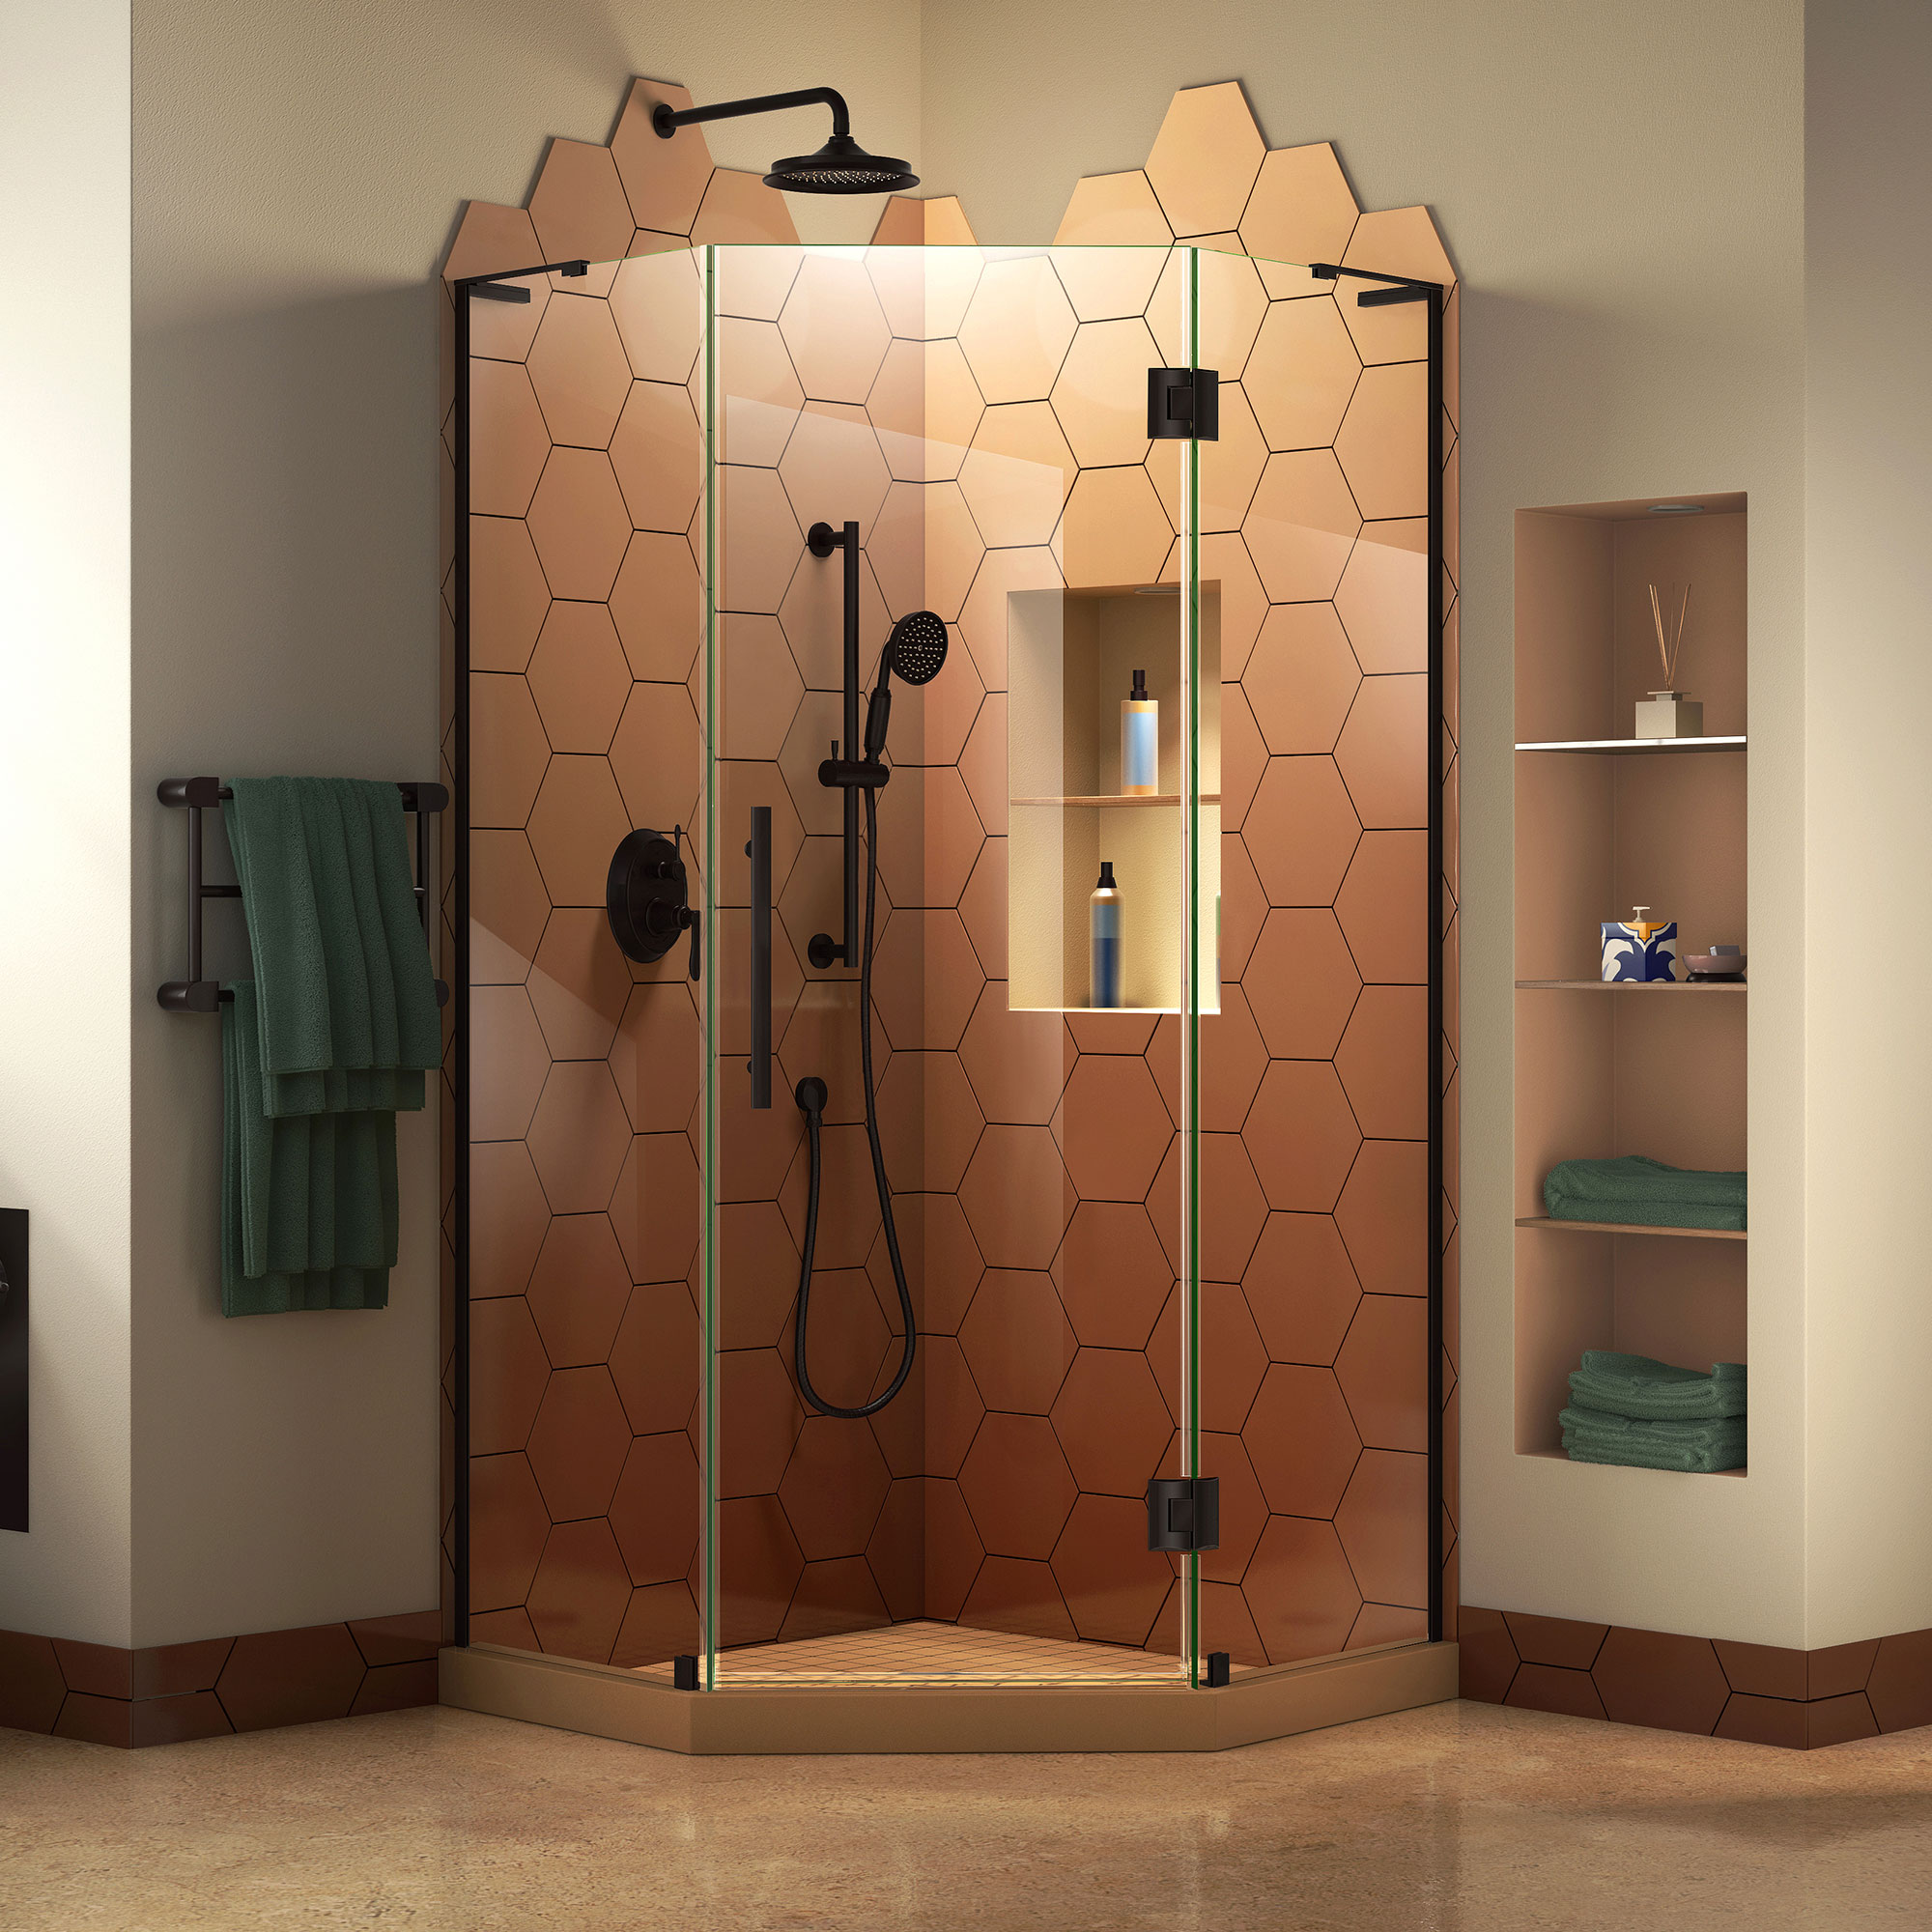 DreamLine Prism Plus 38 in. x 72 in. Frameless Neo-Angle Hinged Shower Enclosure in Satin Black